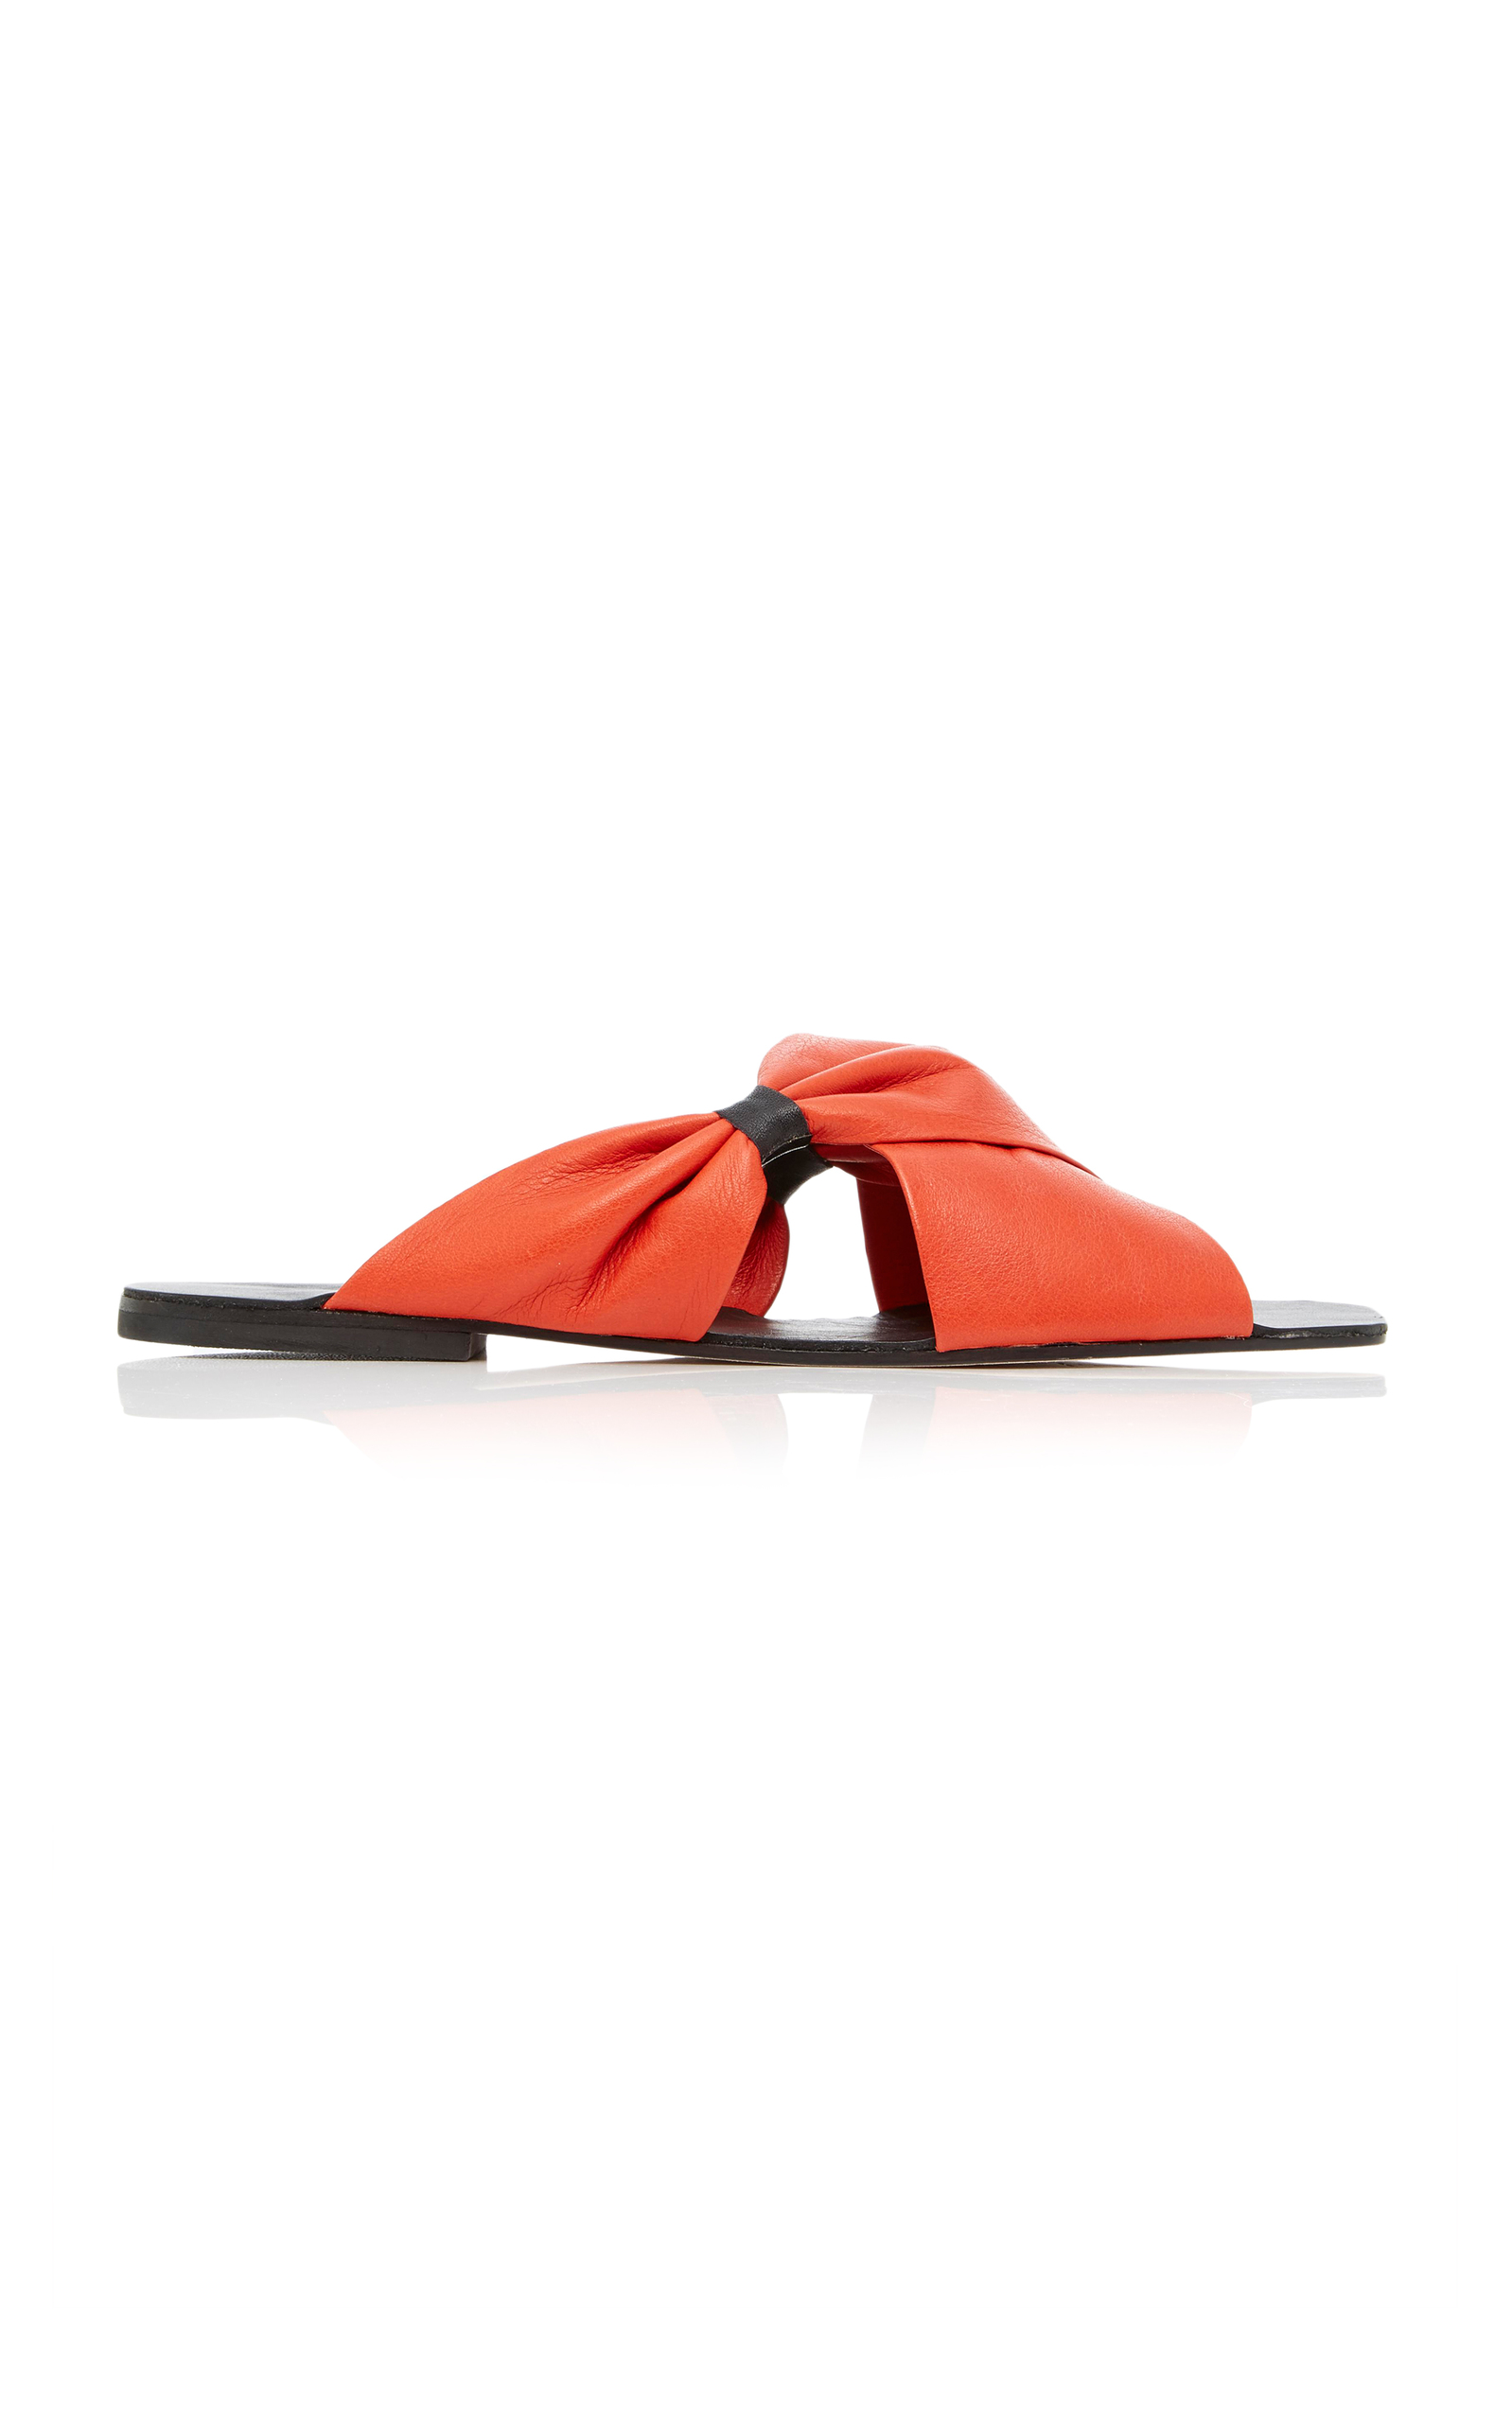 Theca Sandal